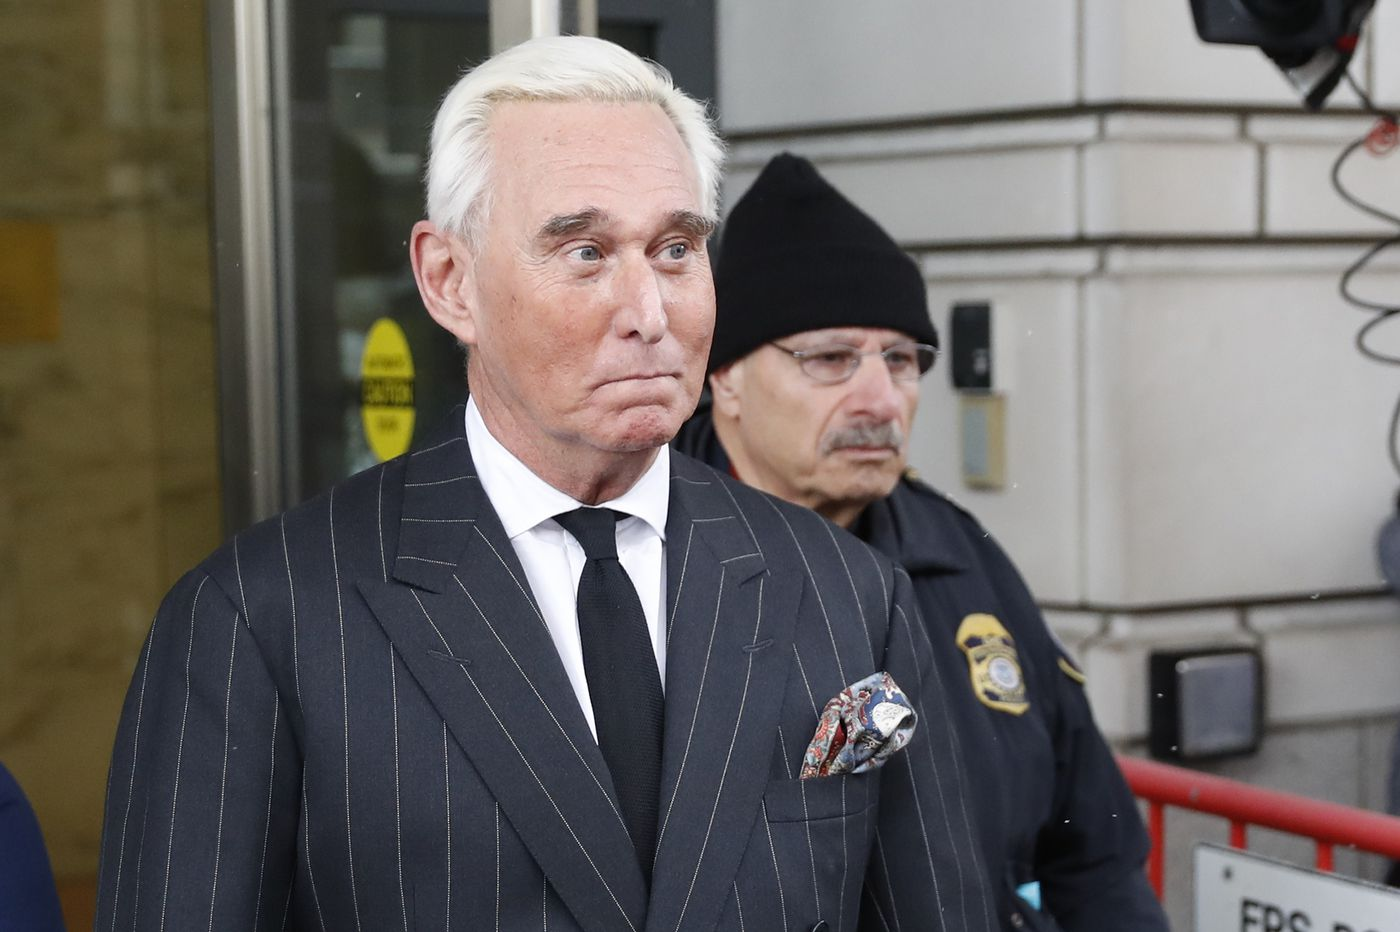 Stone has to stay mum near the courthouse under gag order from judge